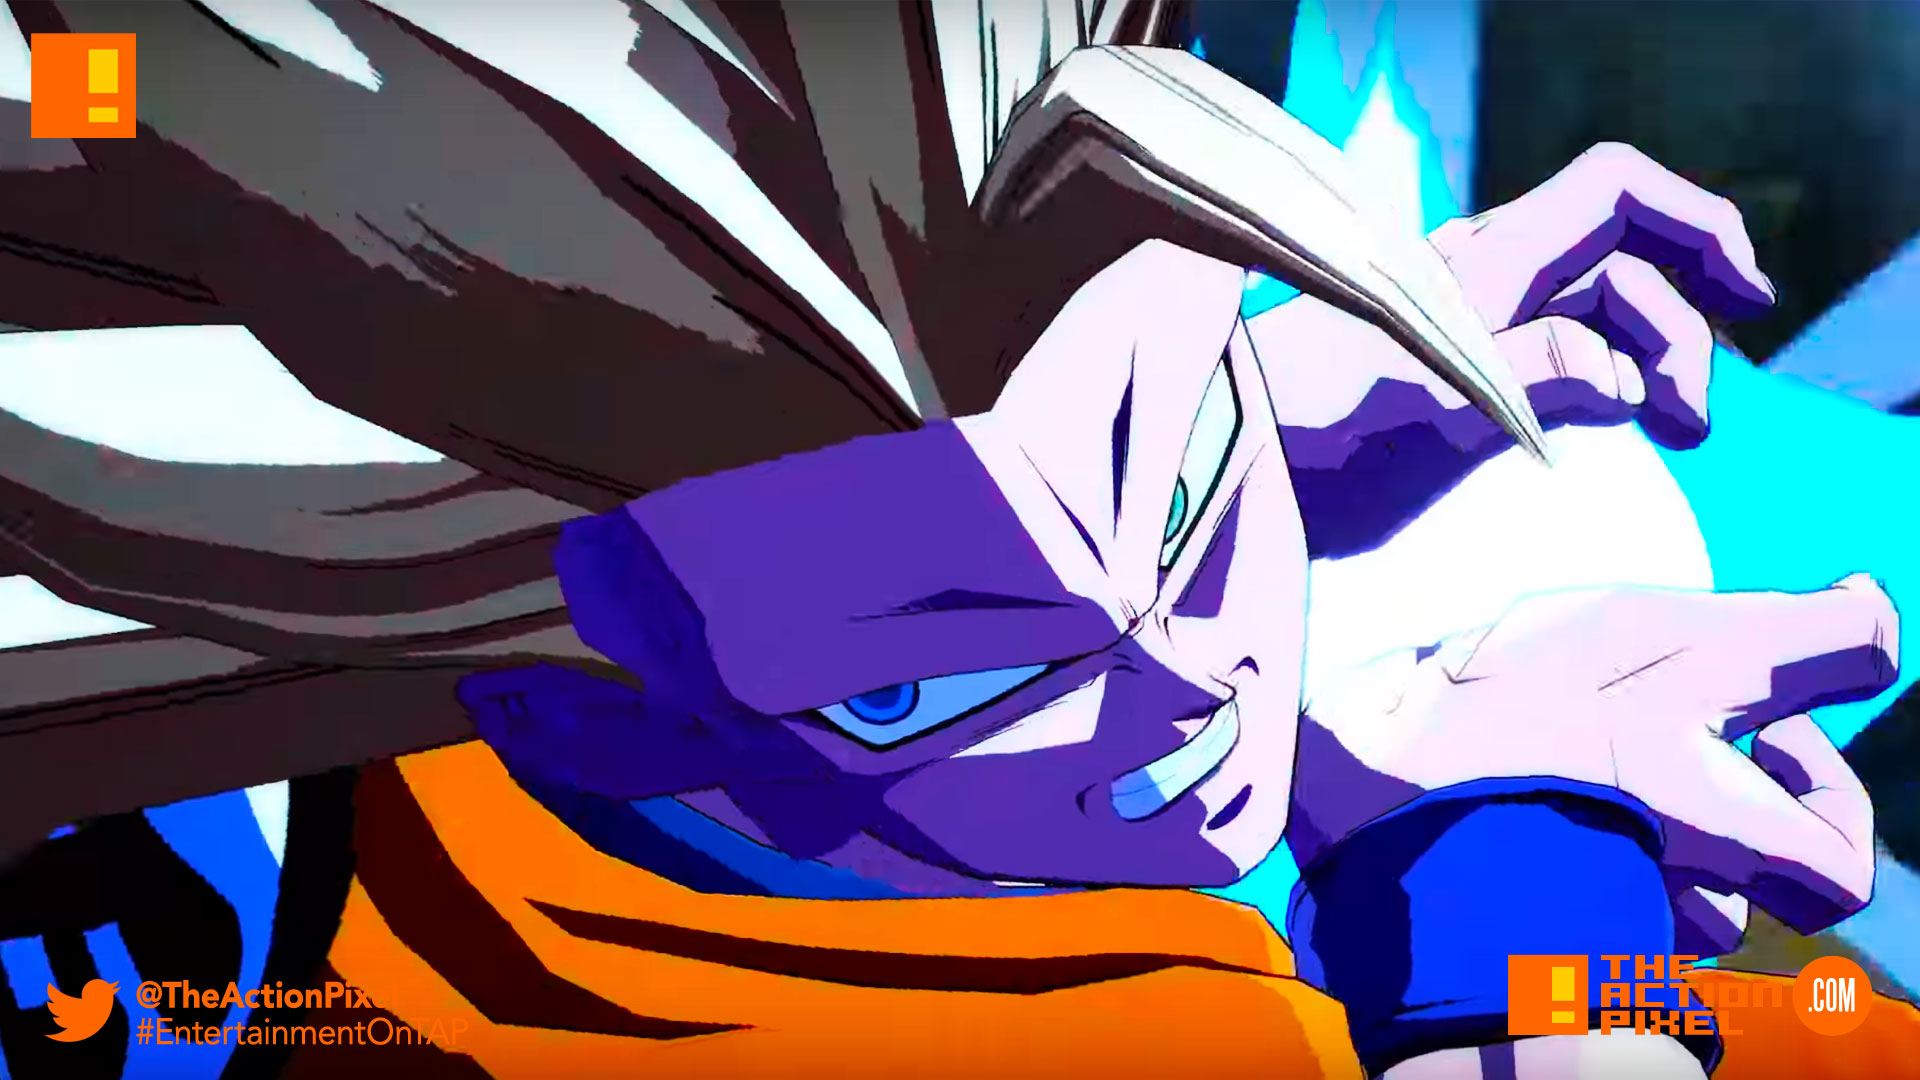 goku, vegeta, dragon ball fighterz, dragon ball z, bandai namco, e3 2017 Entertainment on tap, Electronic Entertainment expo, the action pixel, bandai namco, bandai namco entertainment, the action pixel, goku, buu, gohan, piccolo, vegeta, maajin buu, frieza